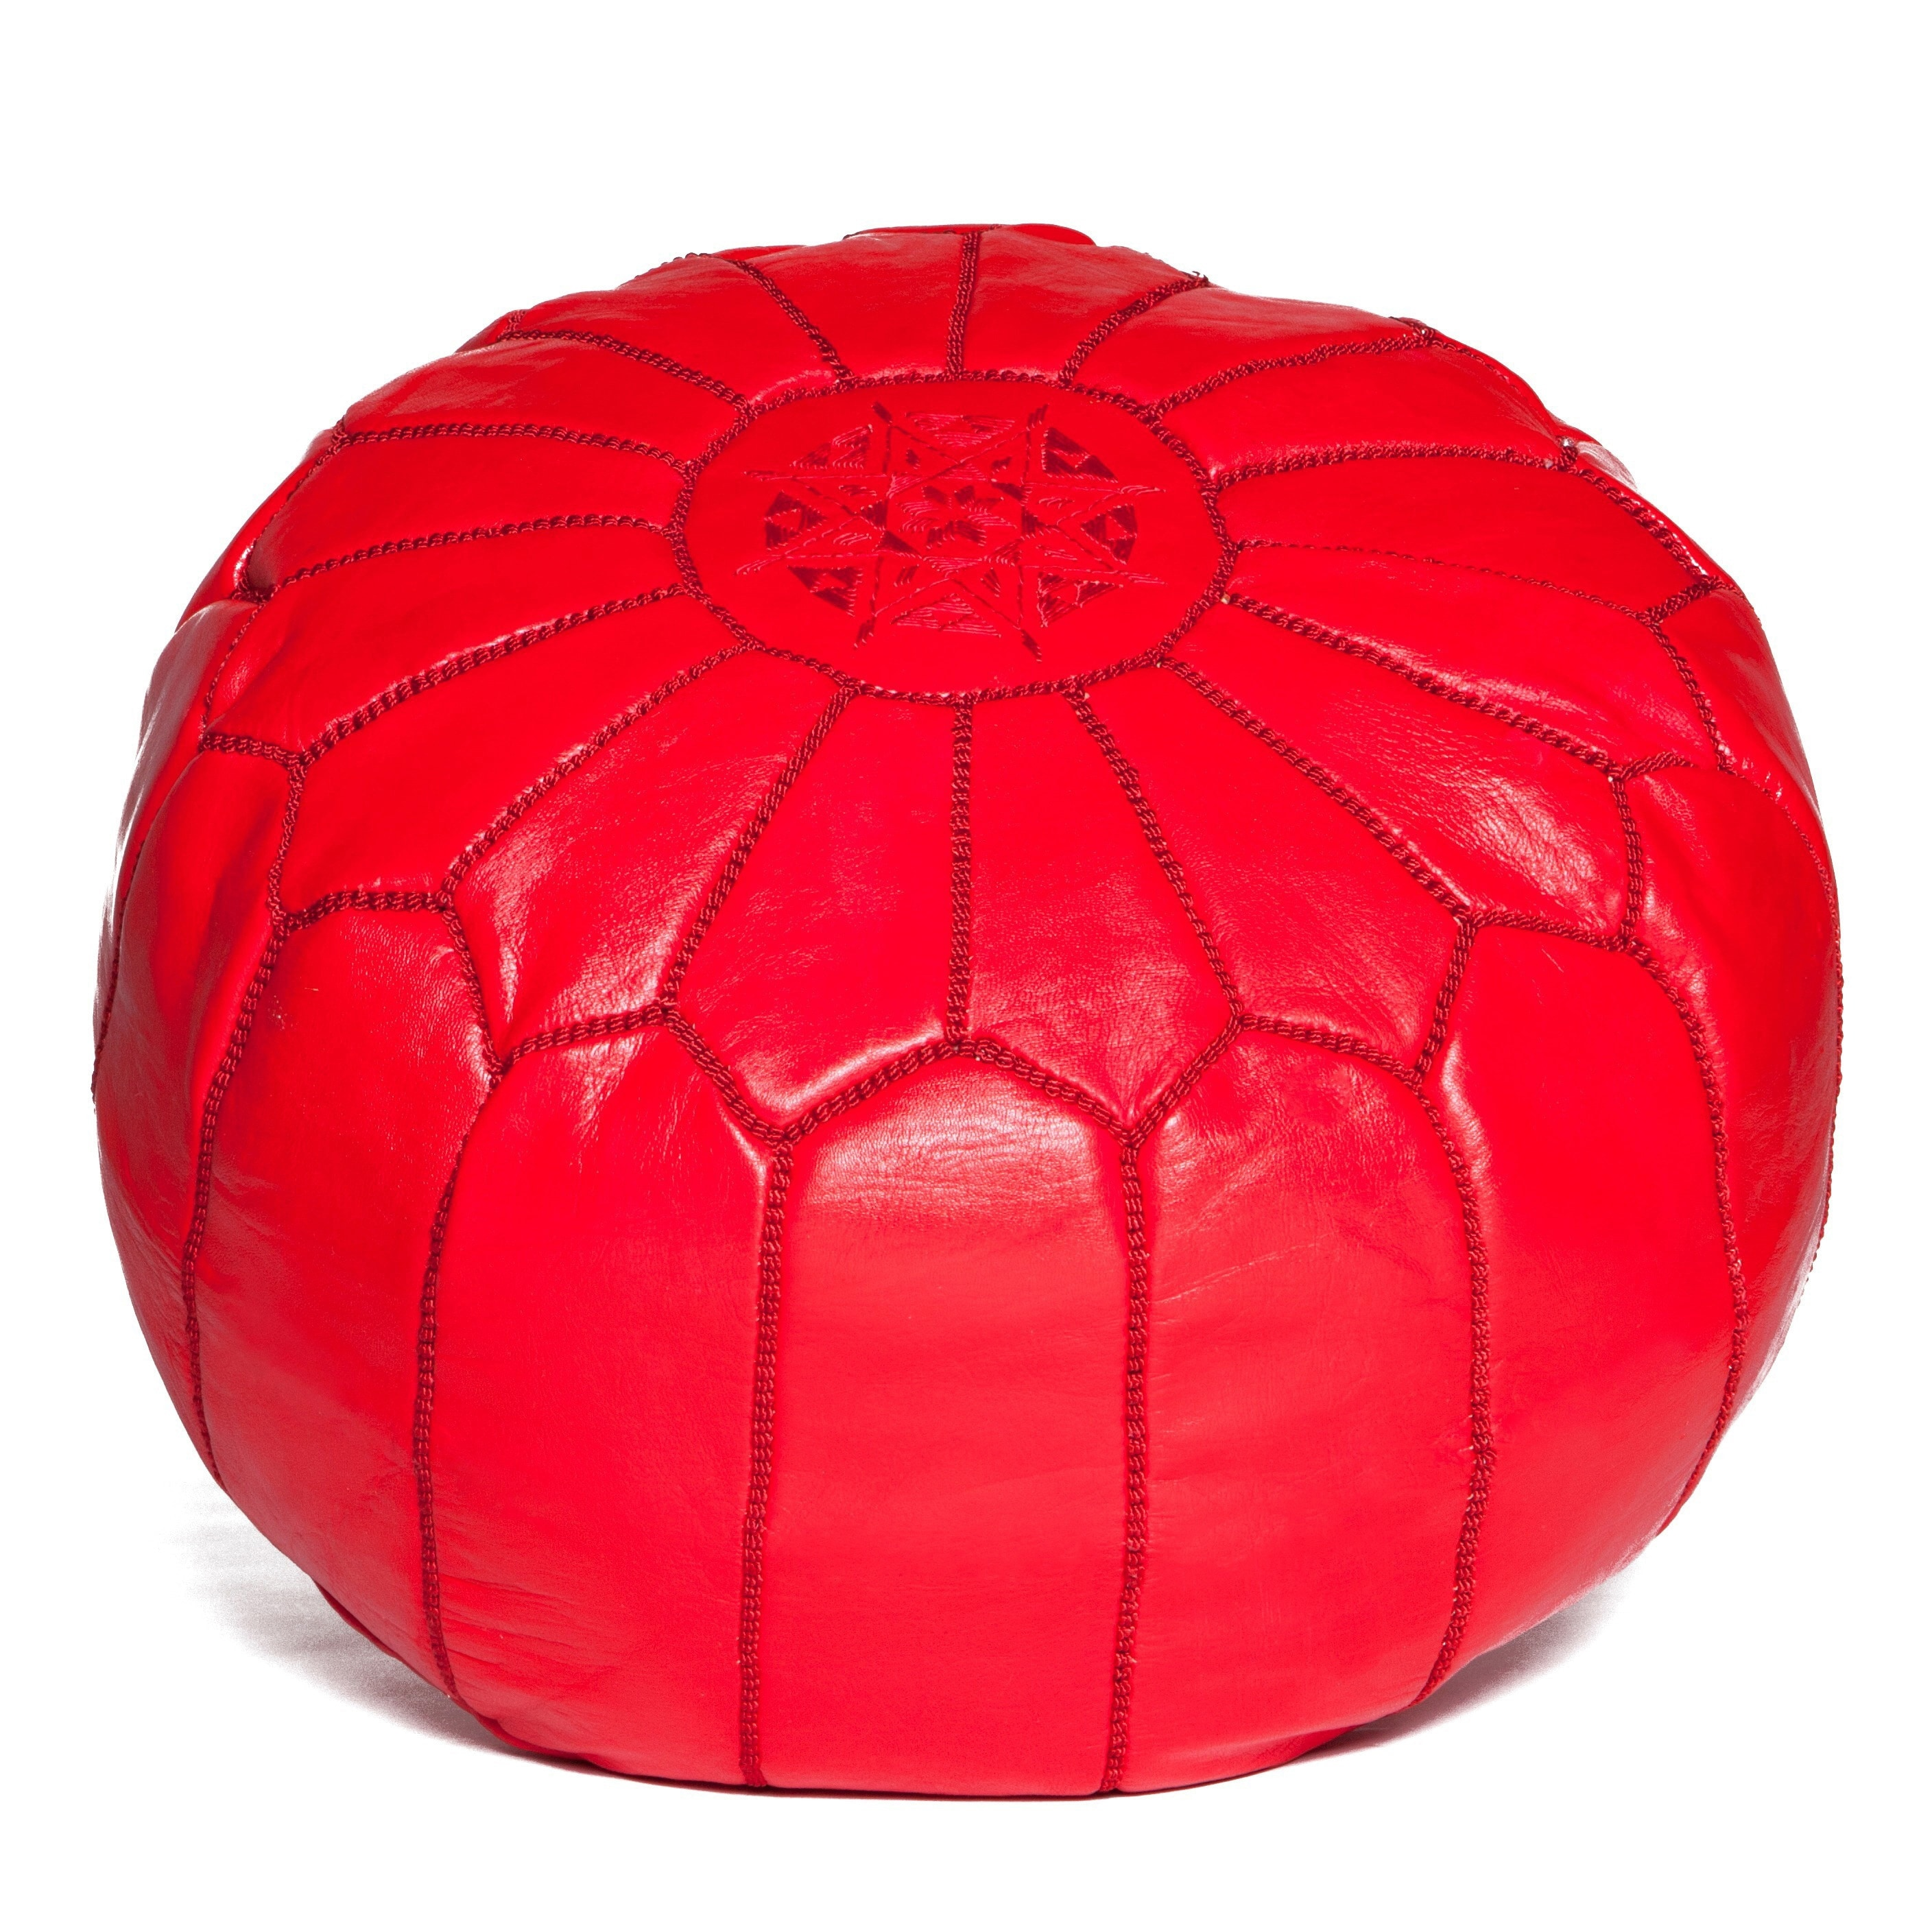 Design Ottoman red Moroccan leather pouf Handmade Leather